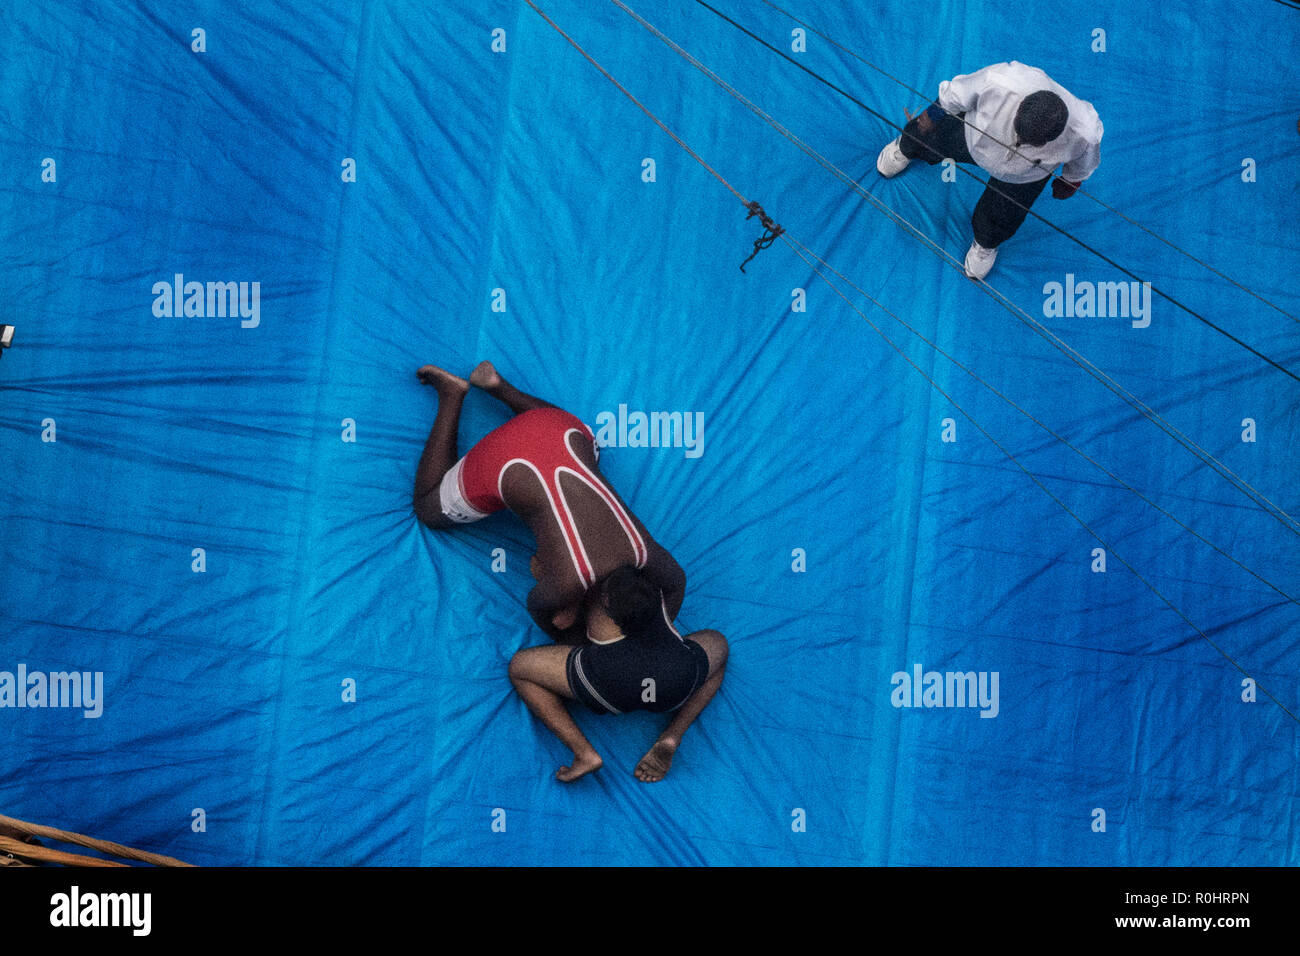 (181105) -- KOLKATA(INDIA), Nov. 5, 2018 (Xinhua) -- Wrestlers compete during a street competition to popularize the sport in Kolkata, India on Nov. 5, 2018. Wrestling once a royal national sport, in recent times, due to lack of sponsors, is facing hard times and its popularity is on the decline. (Xinhua Photo/Tumpa Mondal) Stock Photo